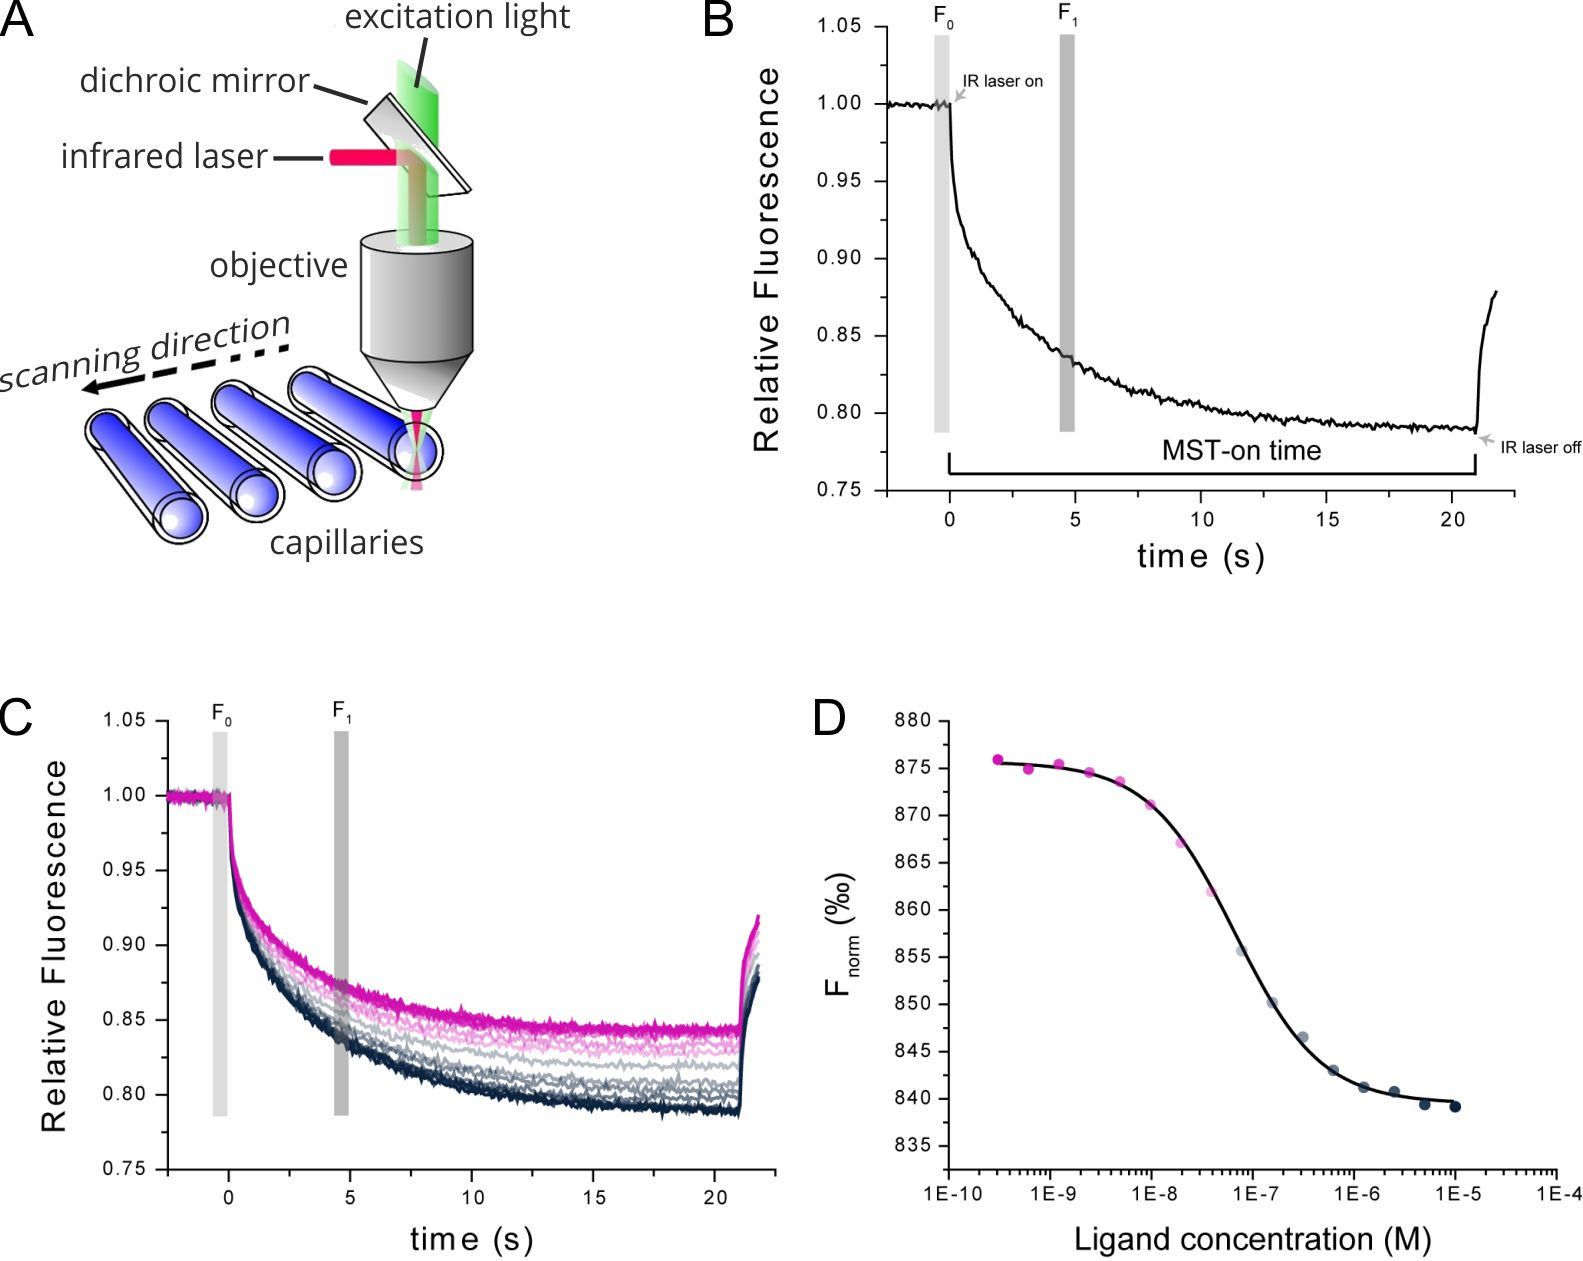 MicroScale Thermophoresis, Thermophoresis, Affinity, Molecular Interaction, Binding Strength